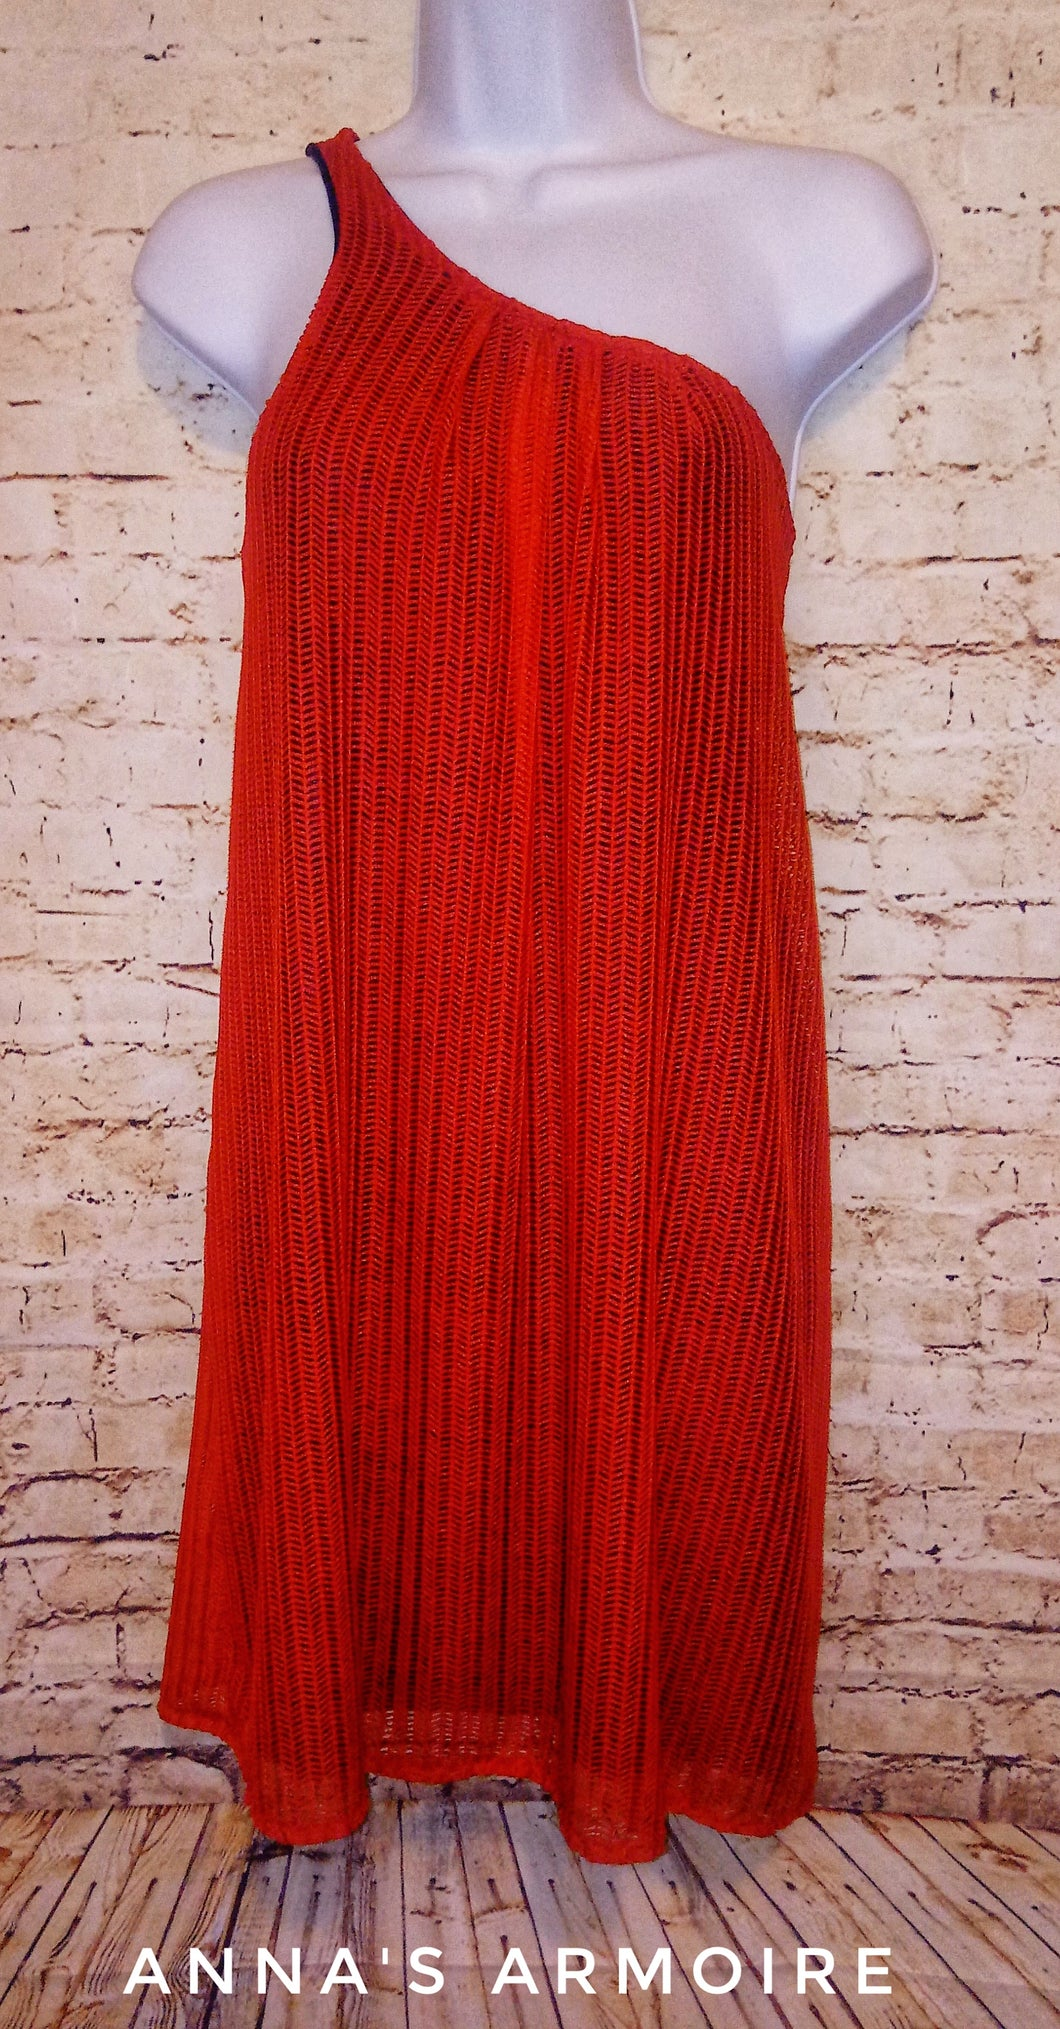 Judith March One Shoulder Dress Size M - Anna's Armoire